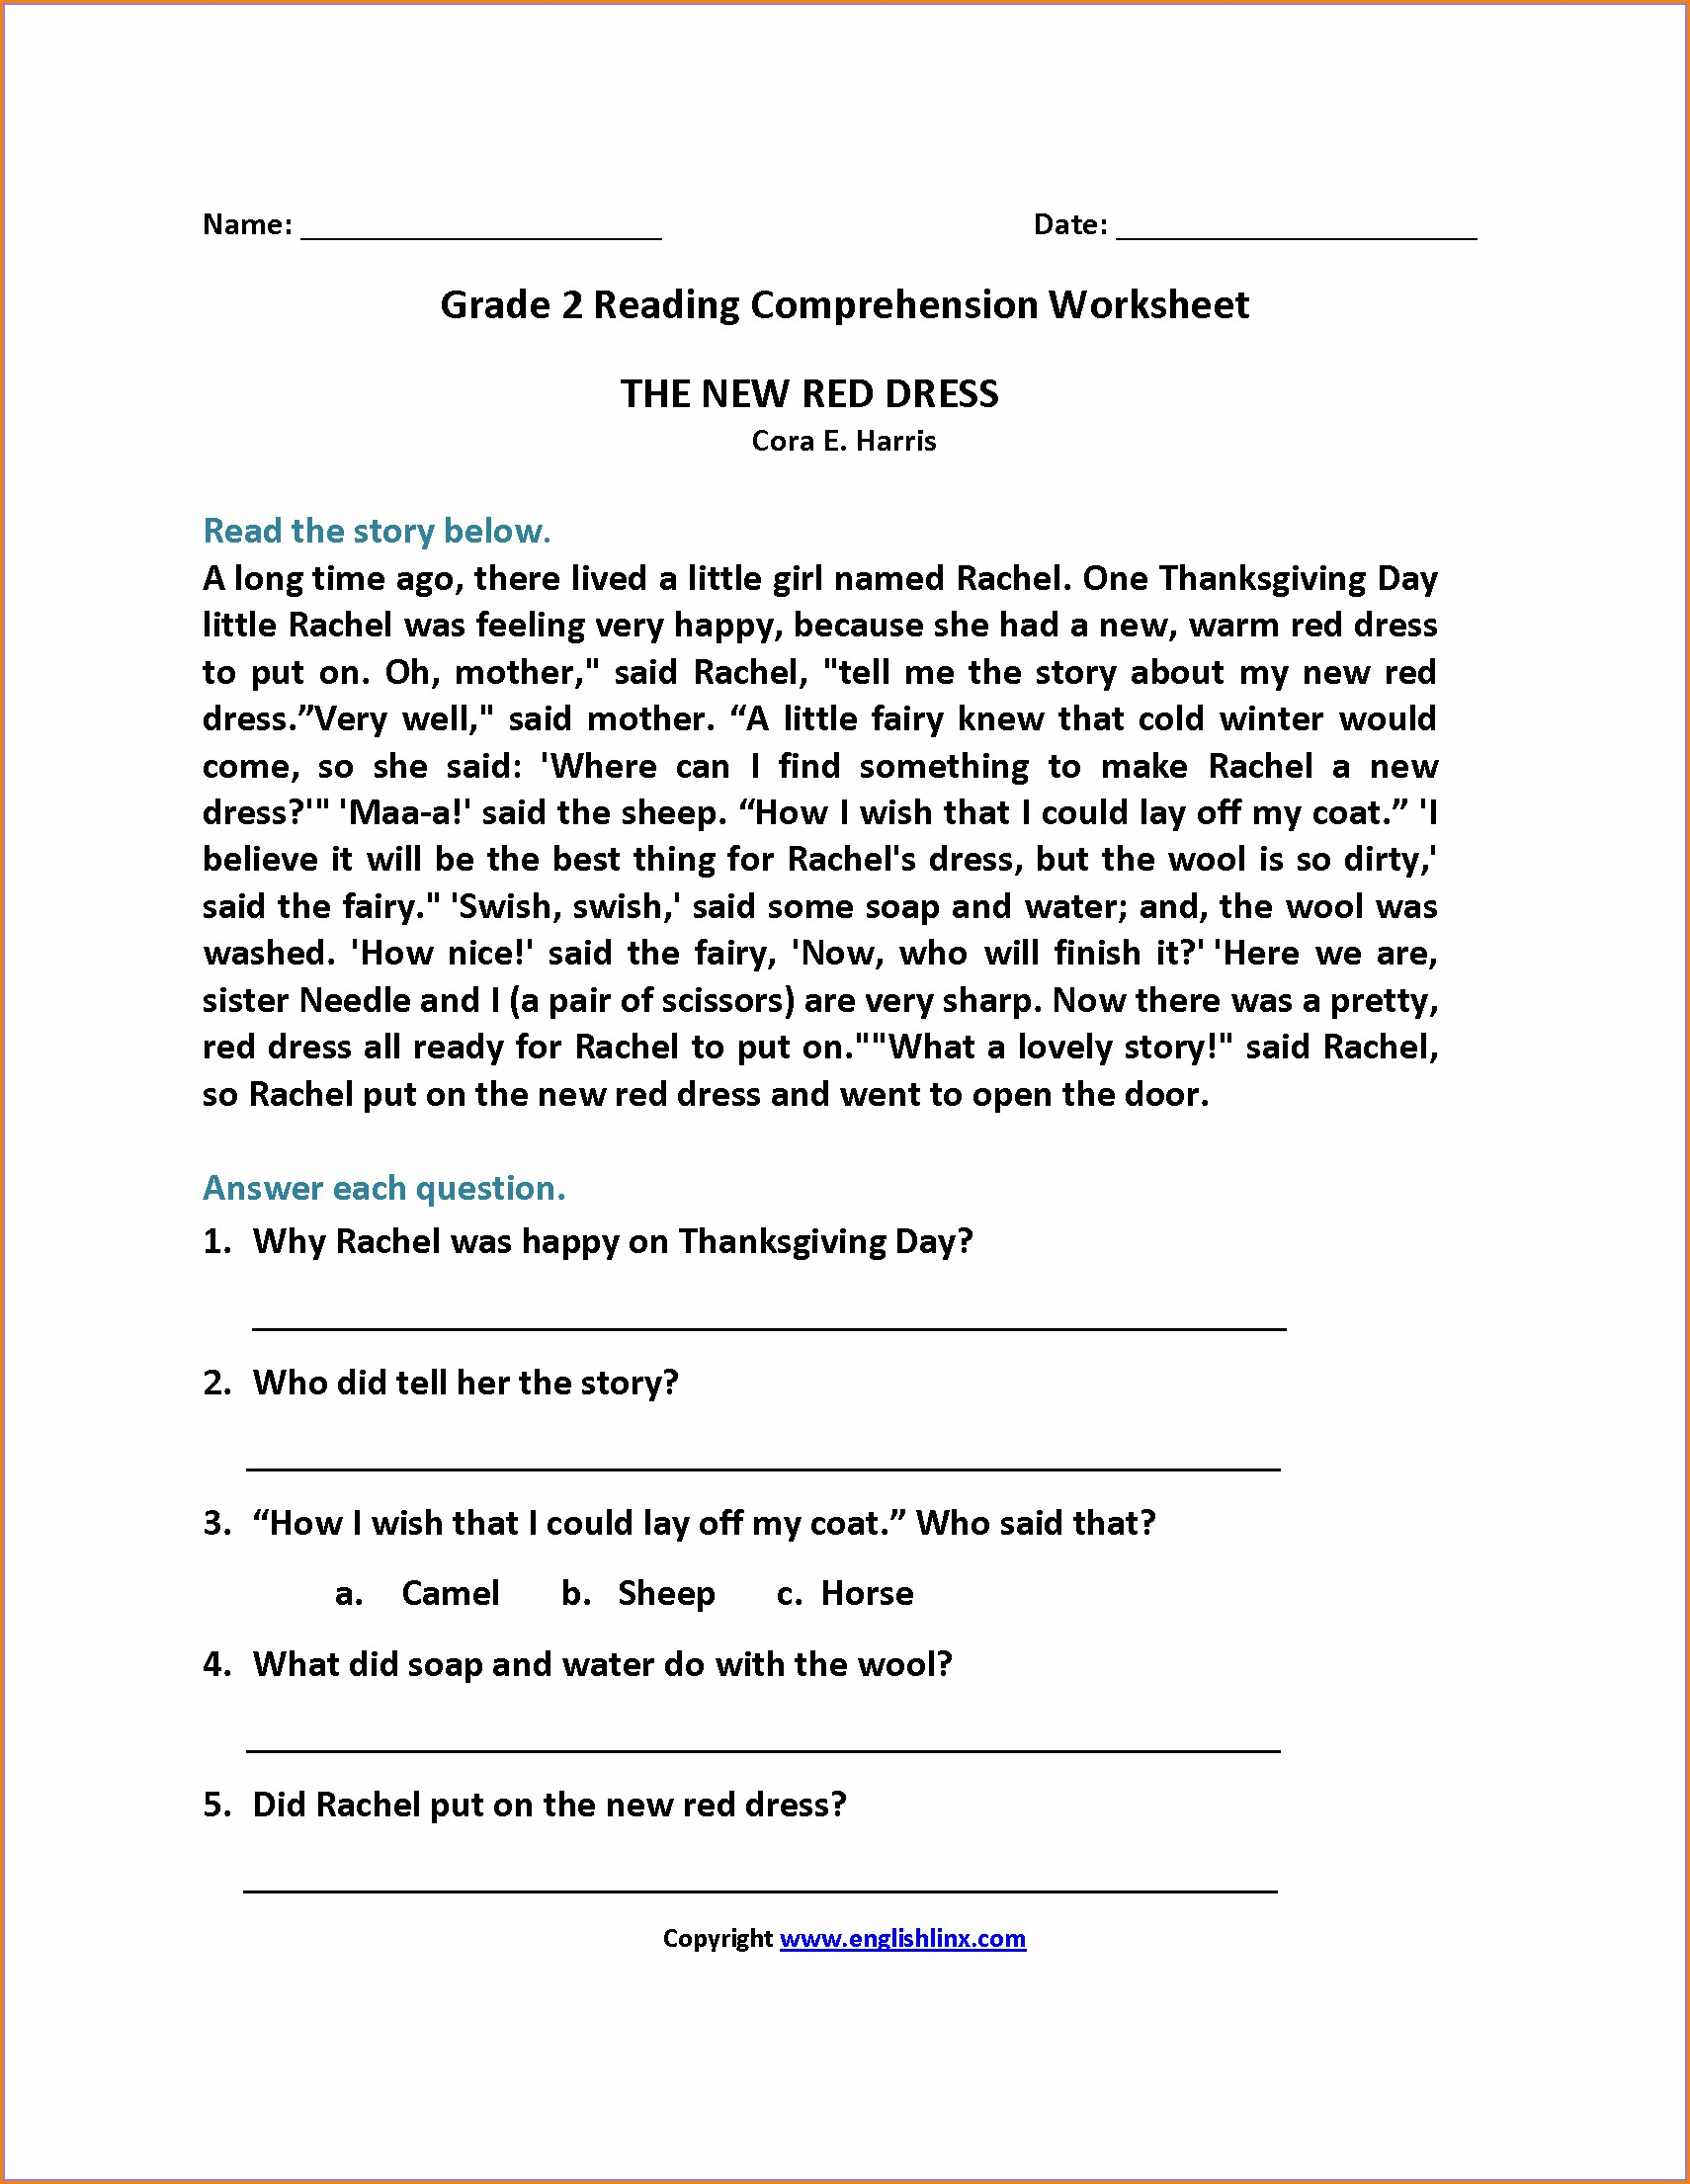 Free Printable Reading Comprehension Worksheet For Grade 2